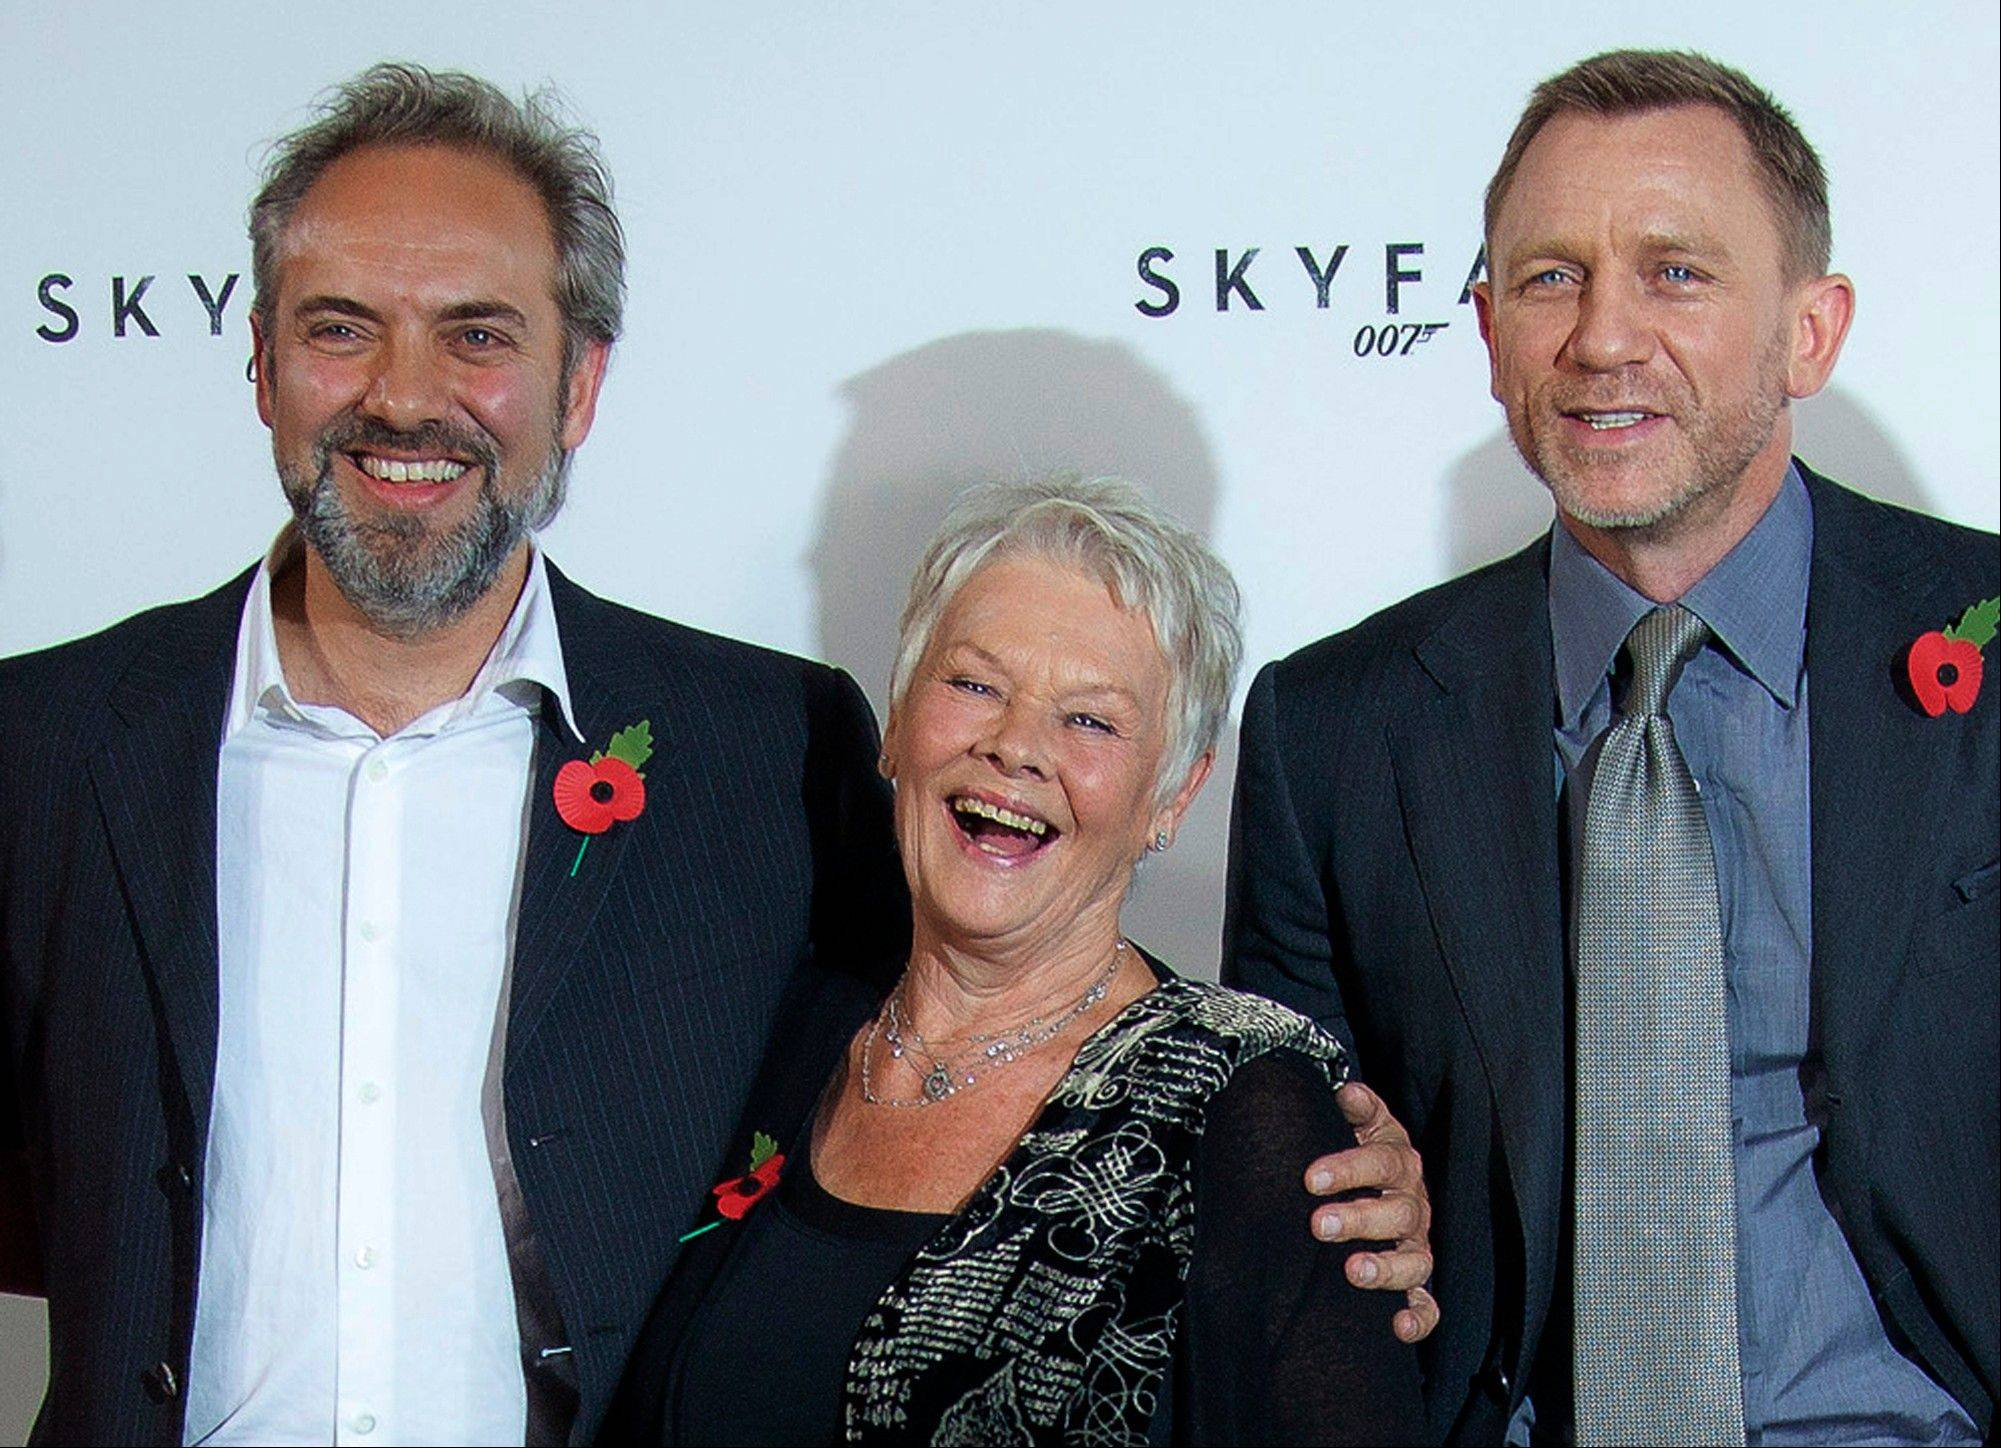 Film director Sam Mendes and actors Dame Judi Dench and Daniel Craig worked together on the last James Bond film �Skyfall.� Mendes says he won�t be directing the next Bond film.